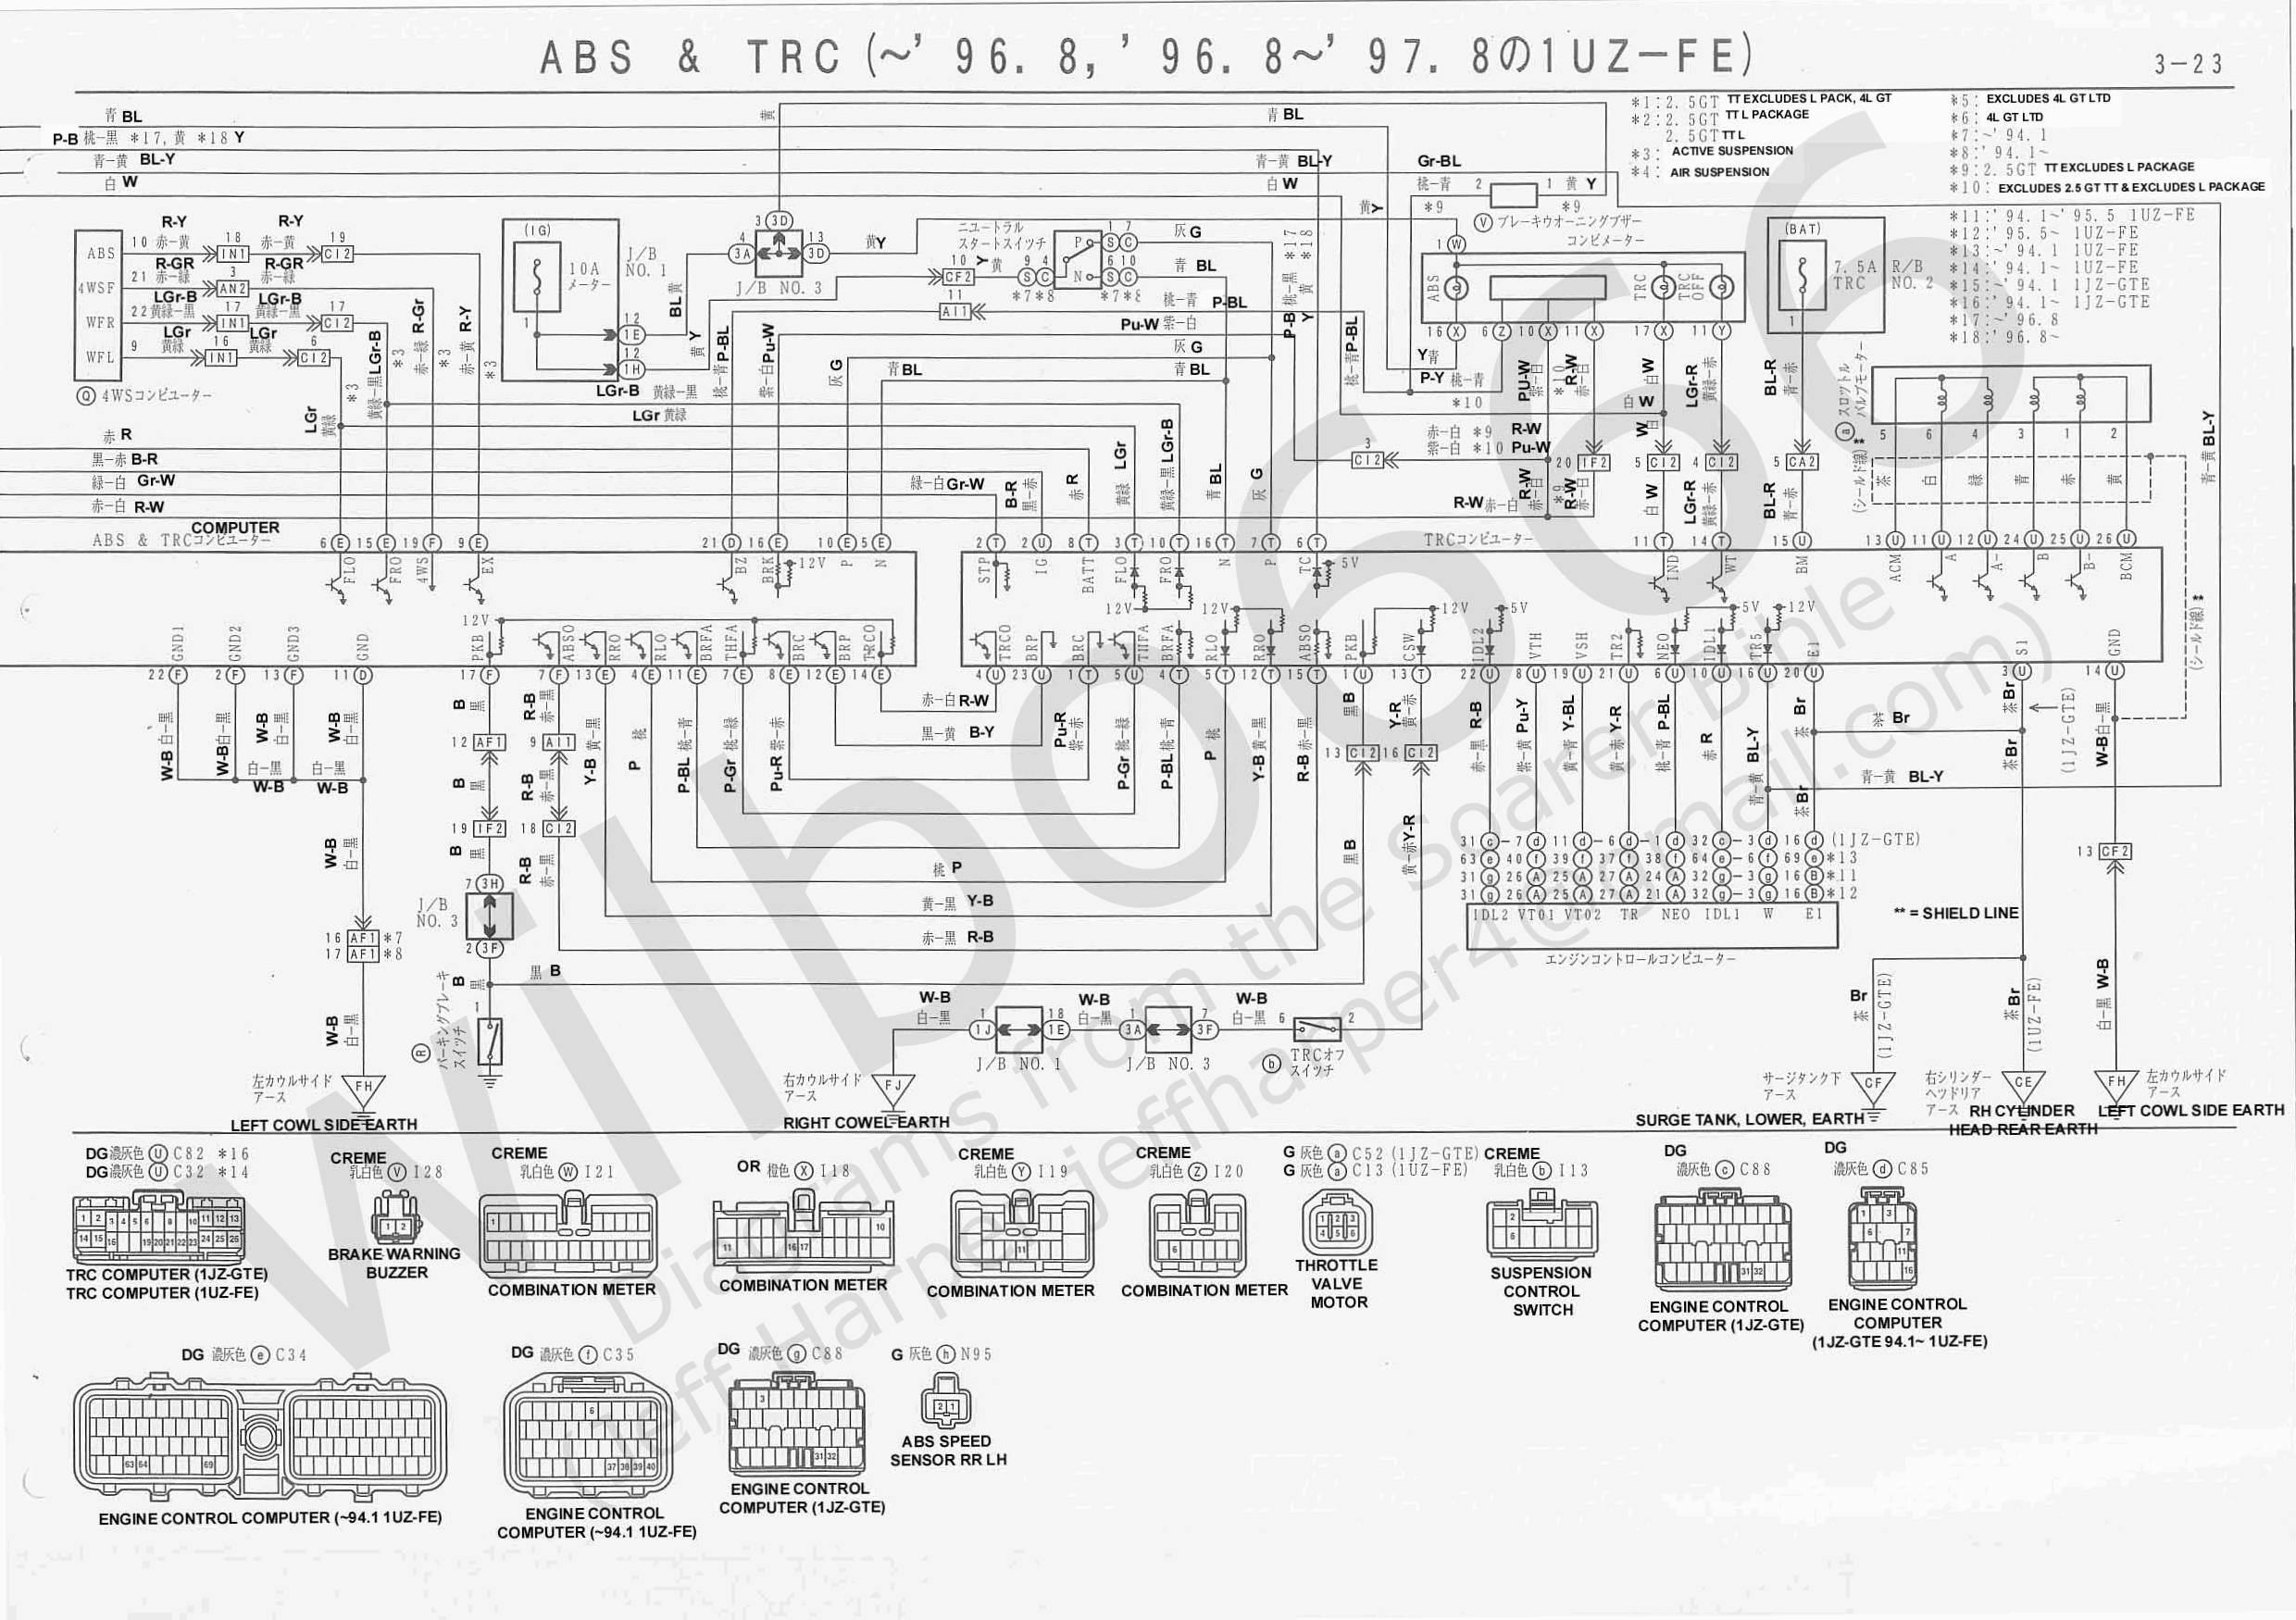 xZZ3x Electrical Wiring Diagram 6737105 3 23?resize=665%2C469 100 [ 1jz ge auto help mechanical electrical pakwheels forums  at mifinder.co